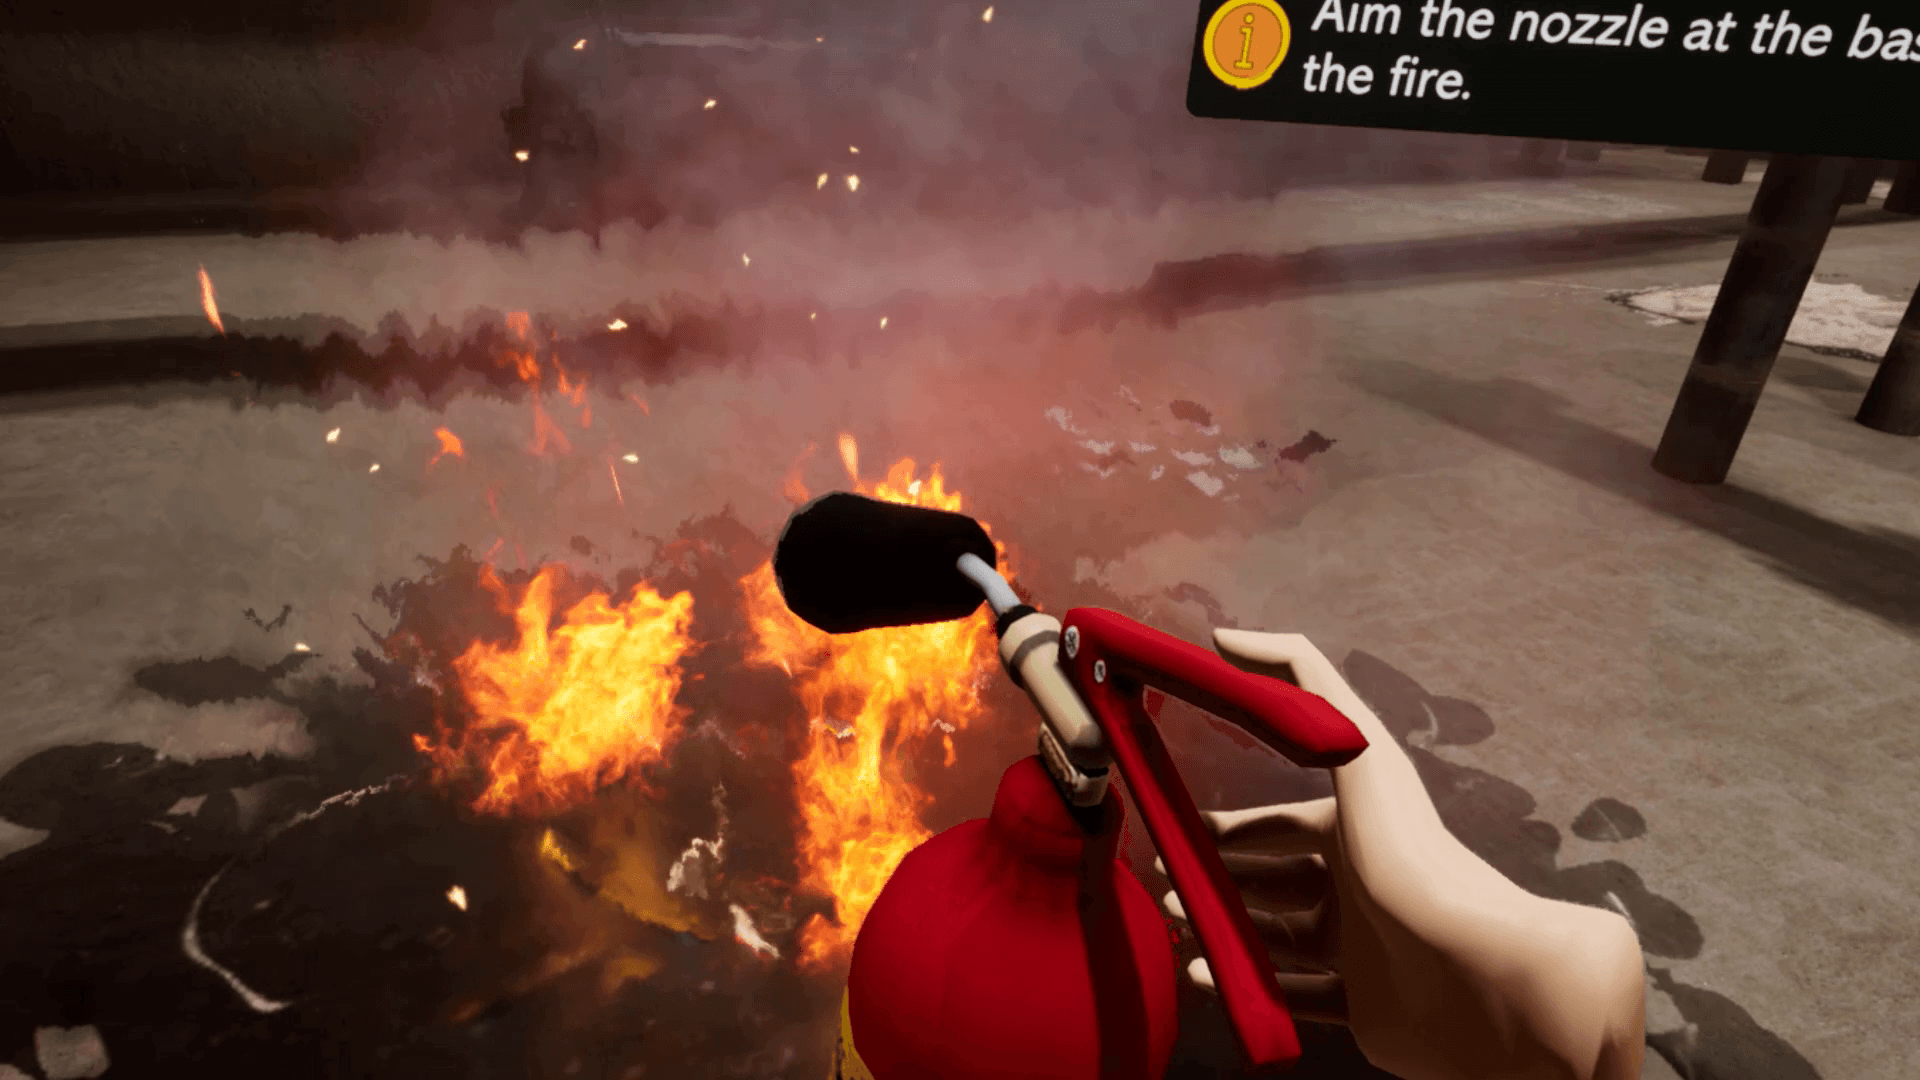 Practicing fire safety drill in a VR environment.